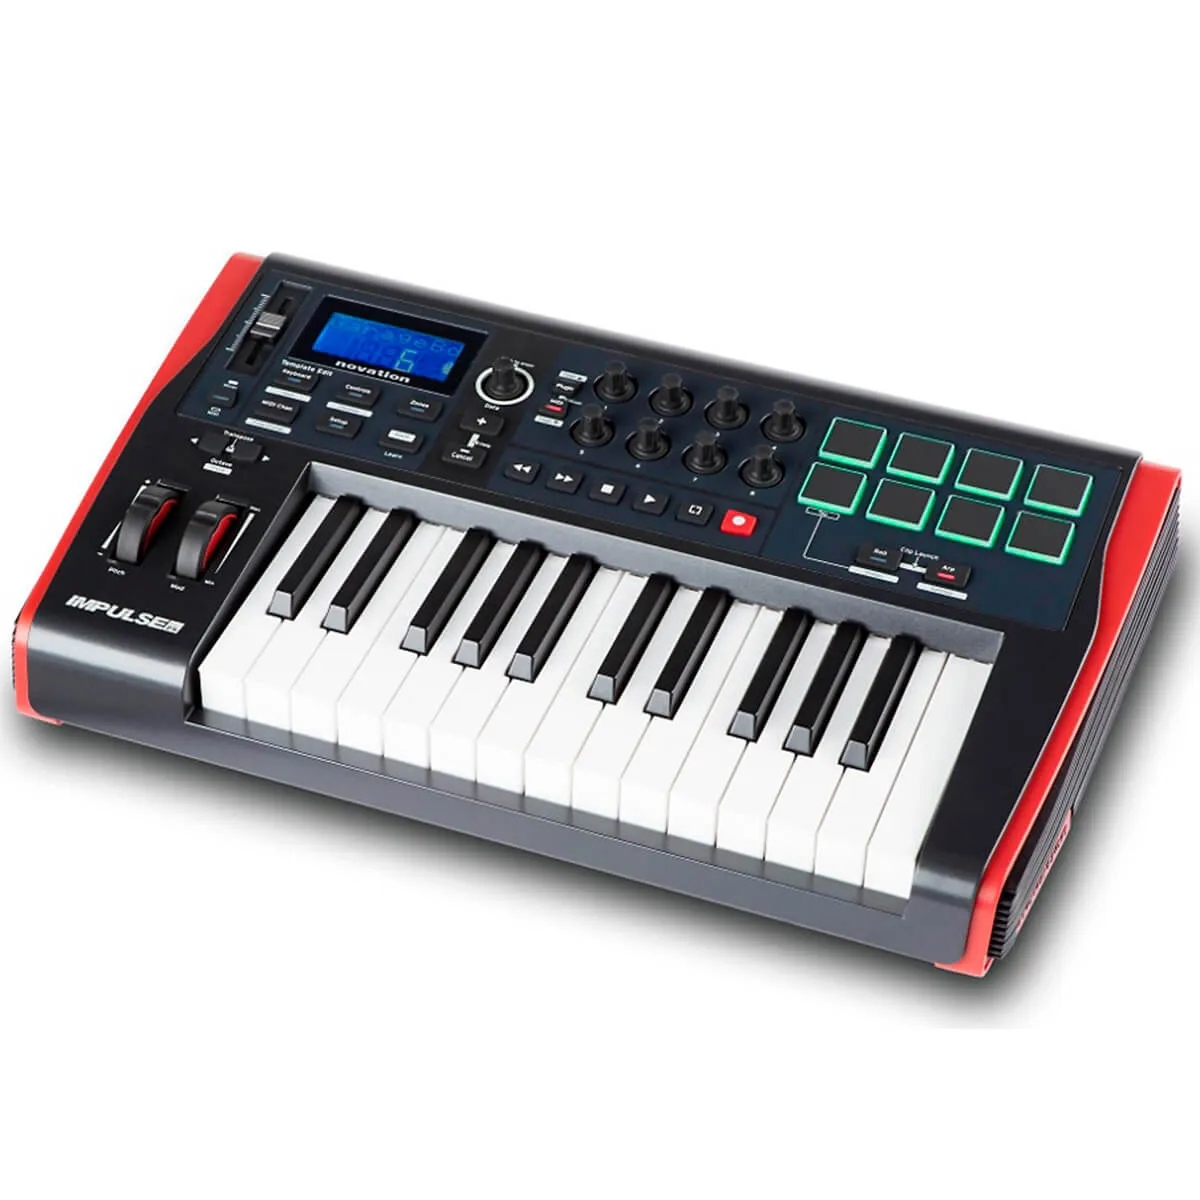 Teclado Controlador Novation Impulse 25 USB / MIDI